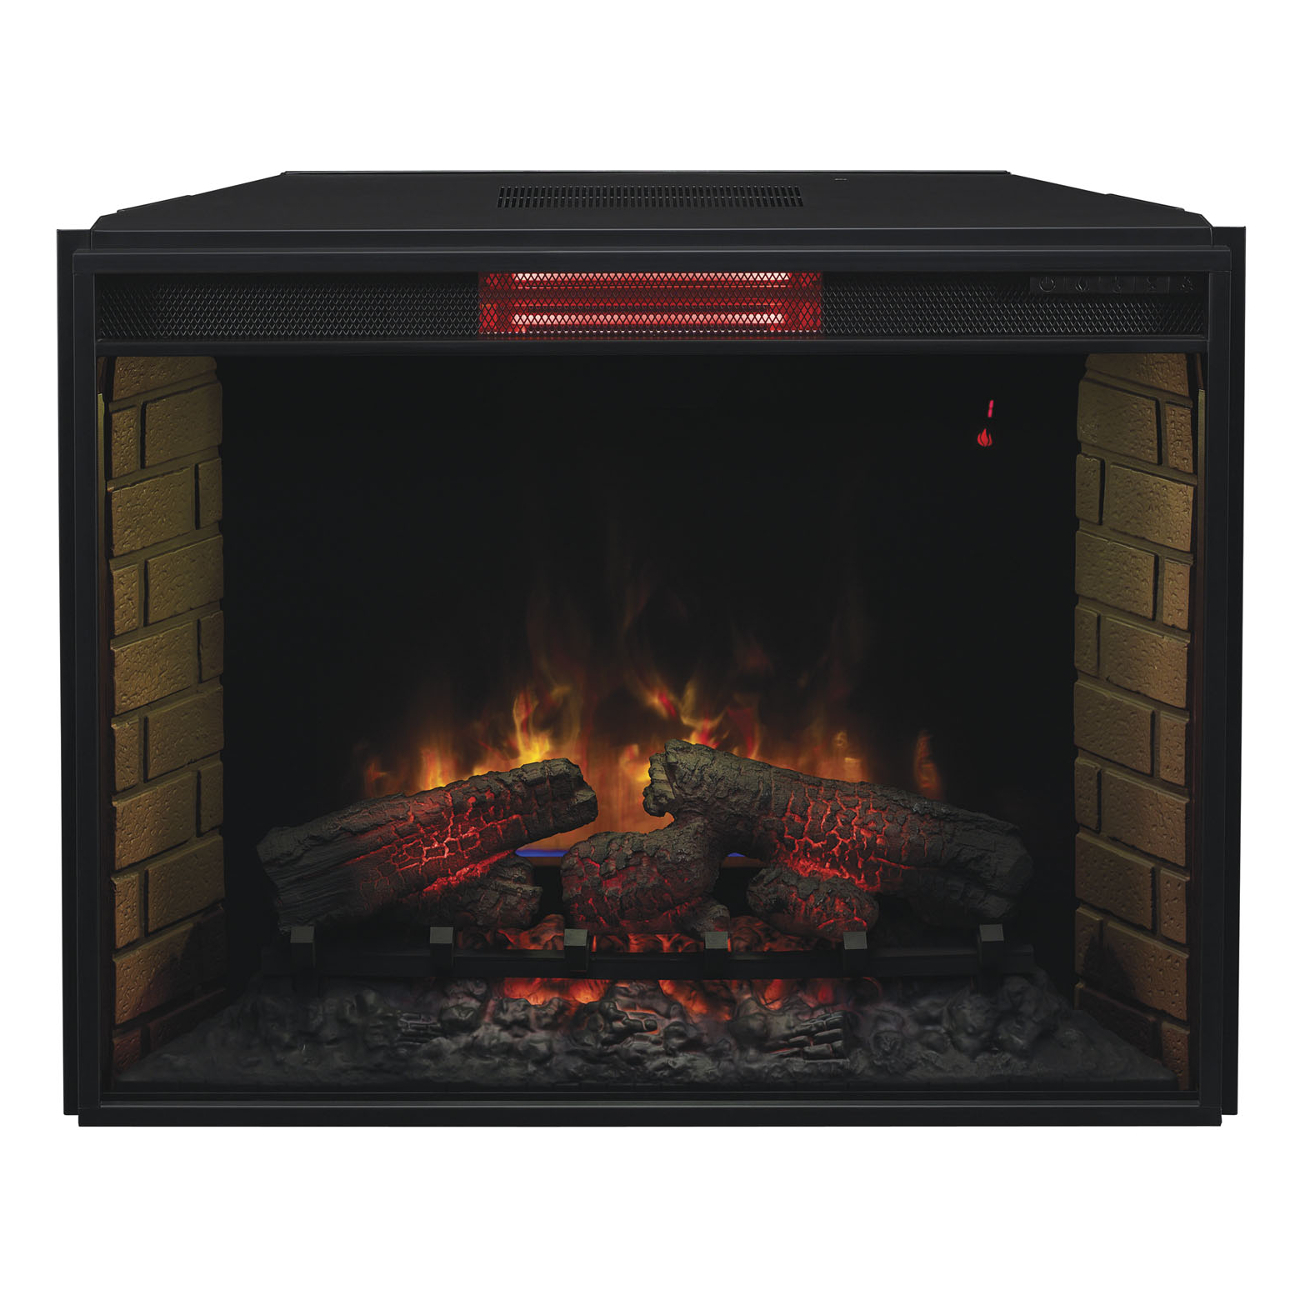 classic-flame-infrared-electric-fireplace-insert-33II310GRA